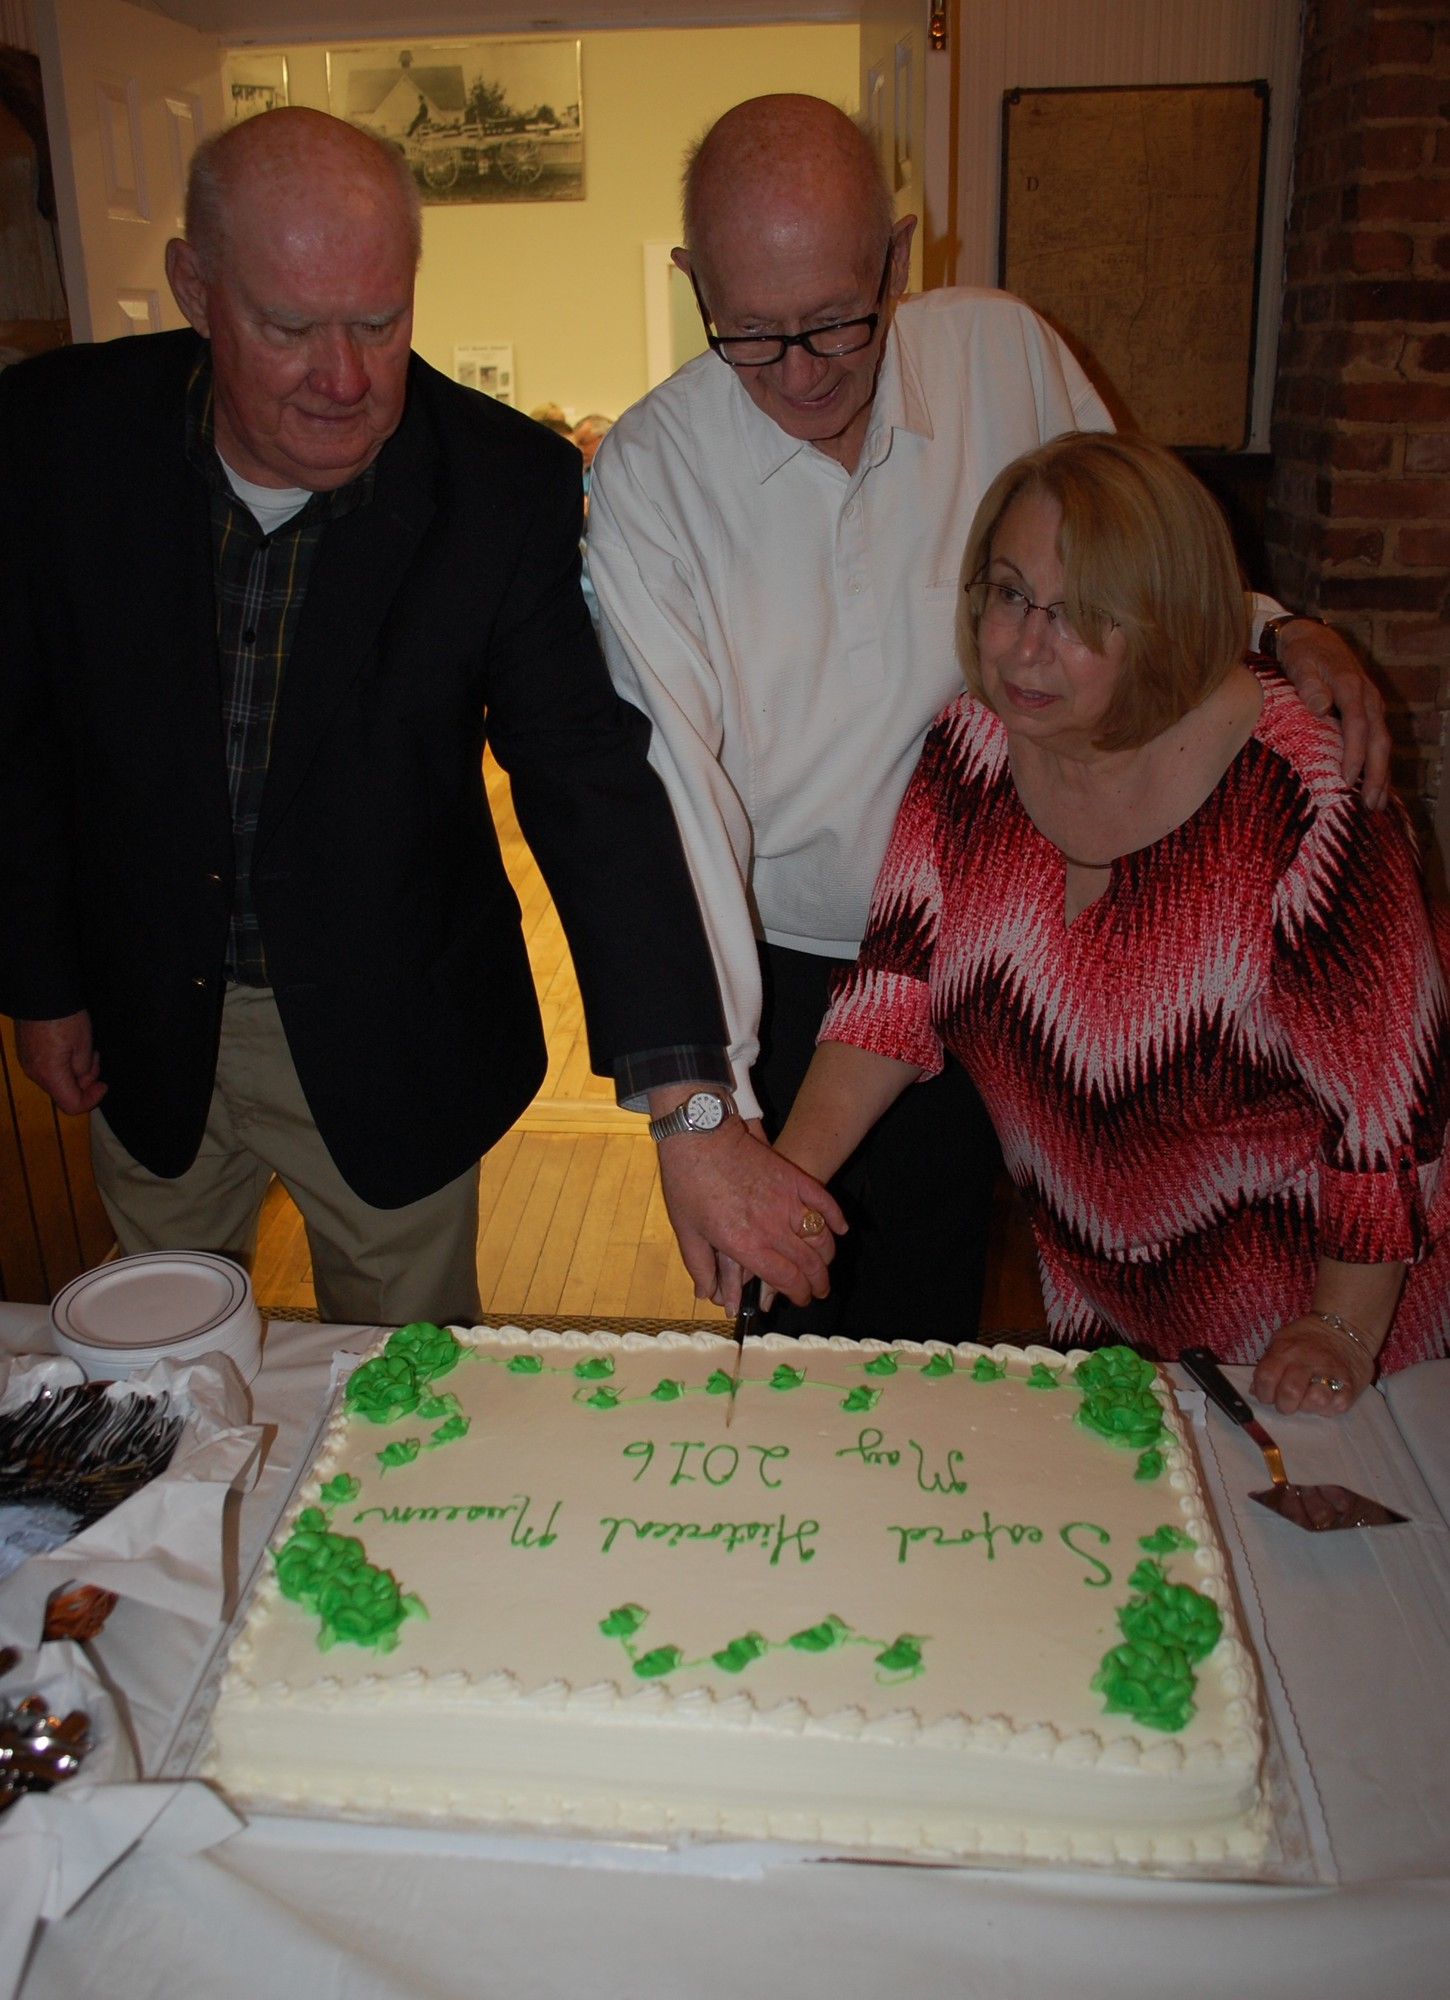 Past presidents Charles Wroblewski and Stan Bahr, and current president Judy Bongiovi, cut the cake to celebrate the re-opening of the Seaford Historical Museum.